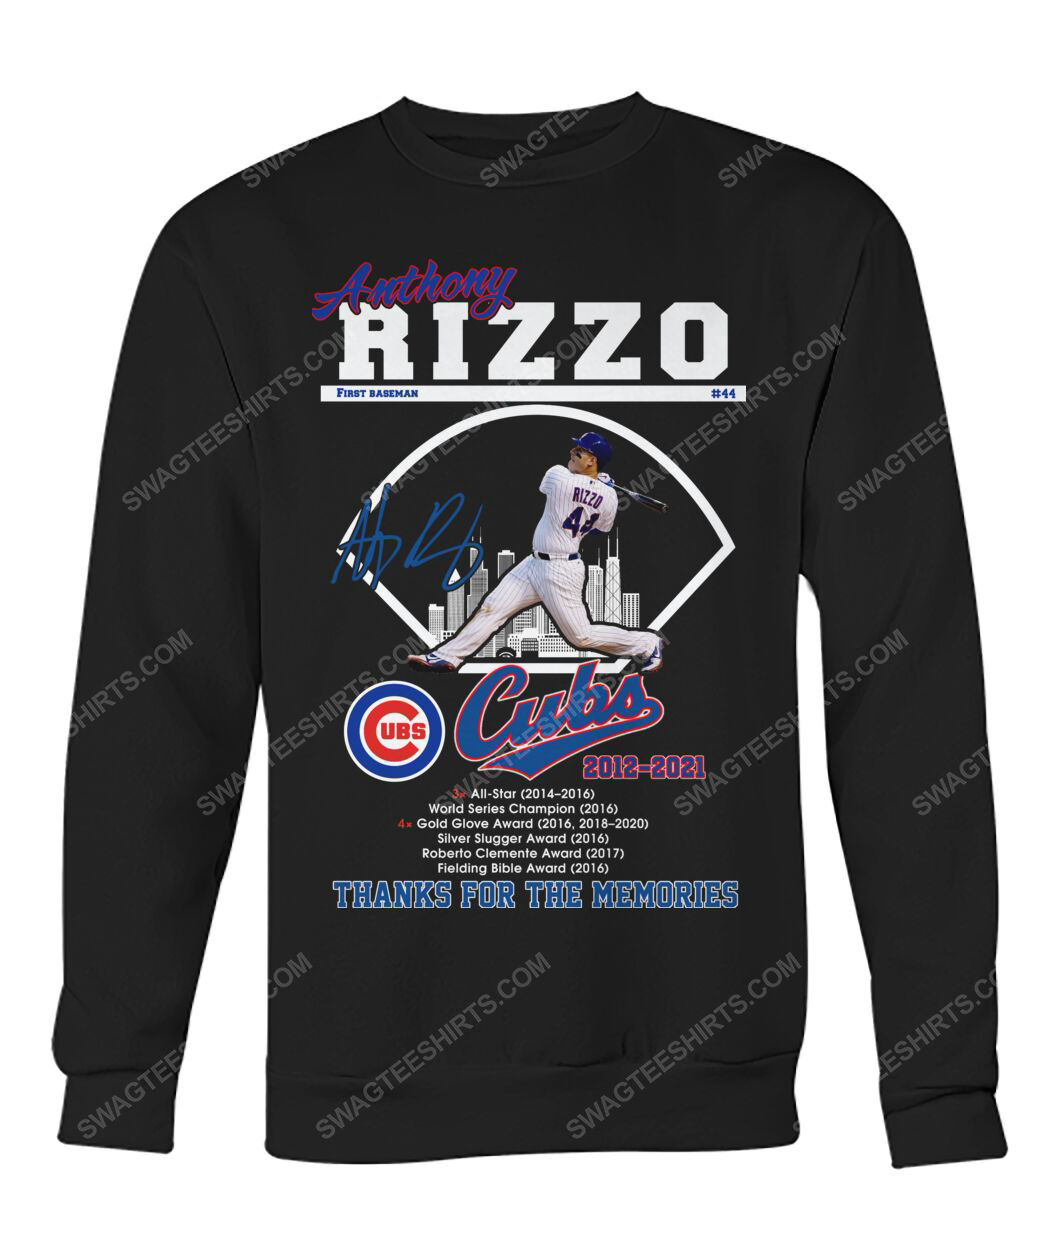 Anthony rizzo chicago cubs thanks for the memories sweatshirt 1